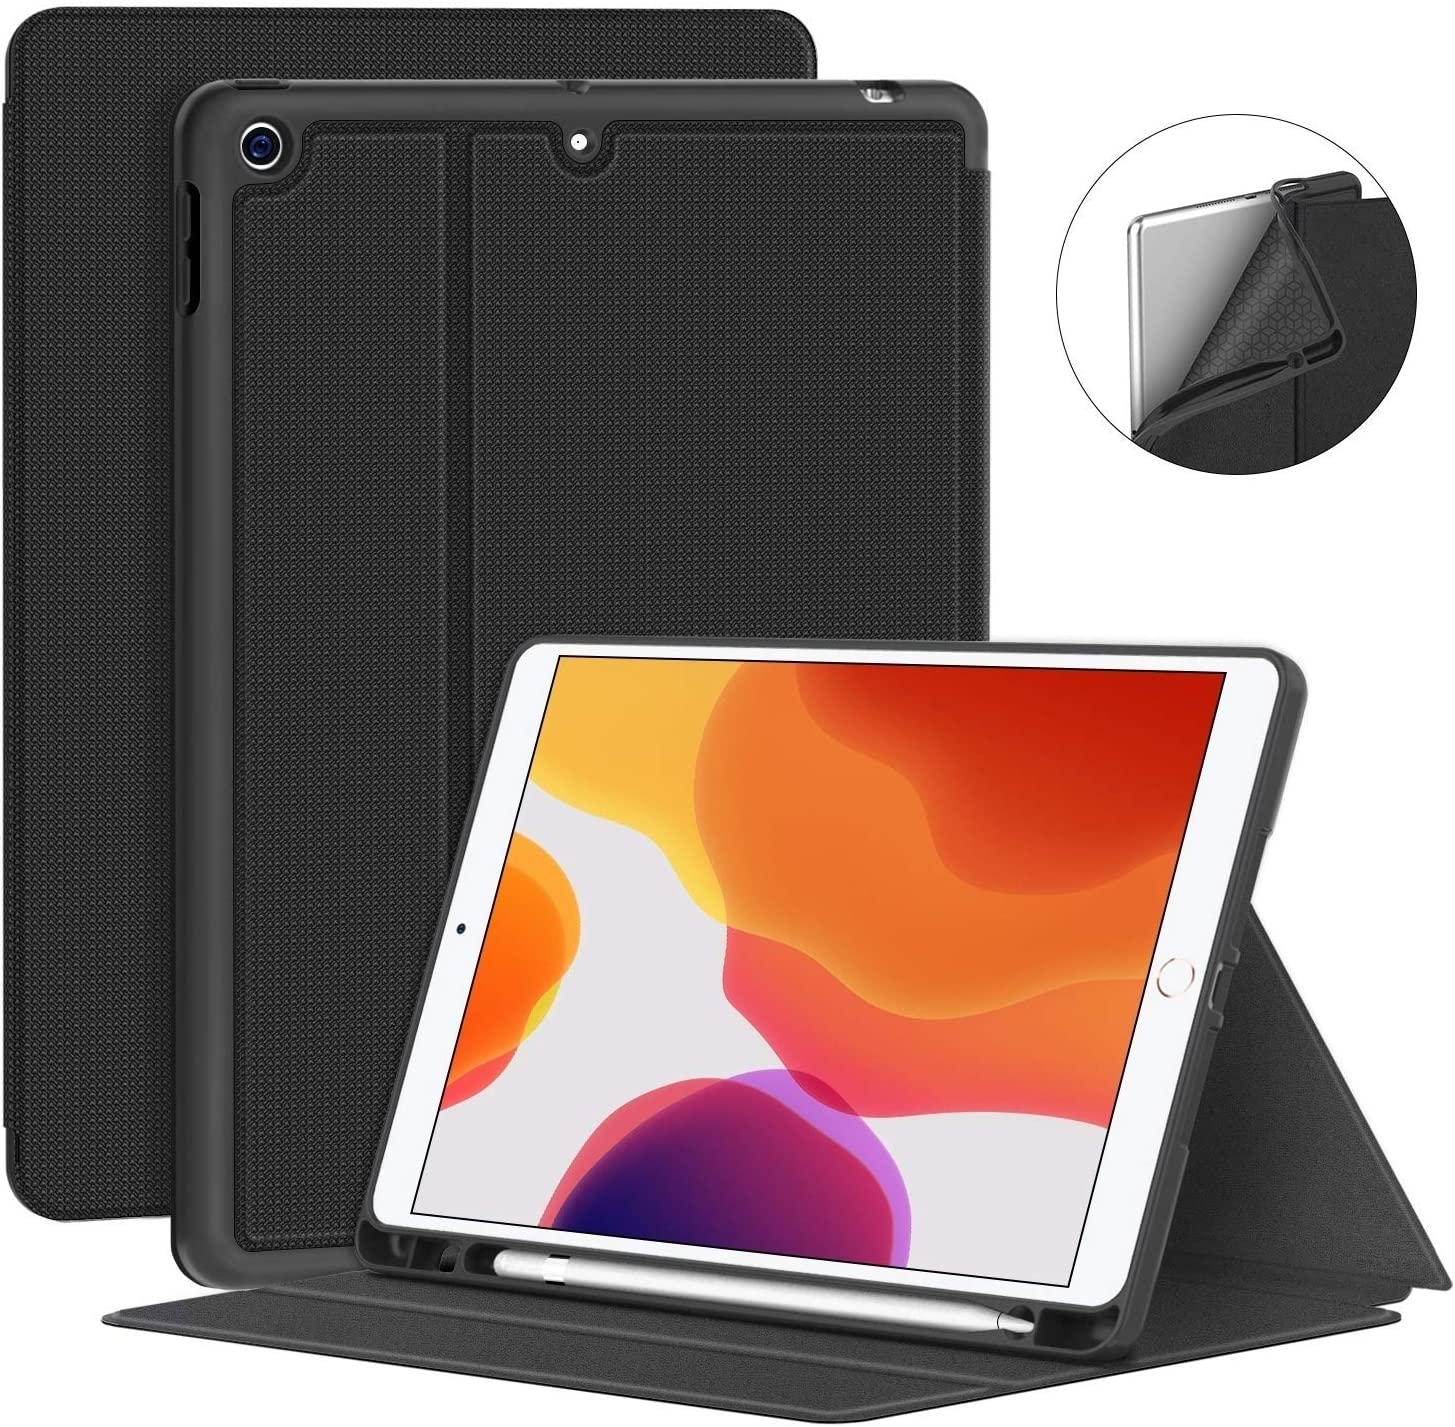 Supveco New iPad 8th Generation Case/iPad 7th Generation Case - Premium Shockproof Case with Auto Sleep/Wake Feature for iPad 10.2 inch 8th Generation/7th Generation (Black)